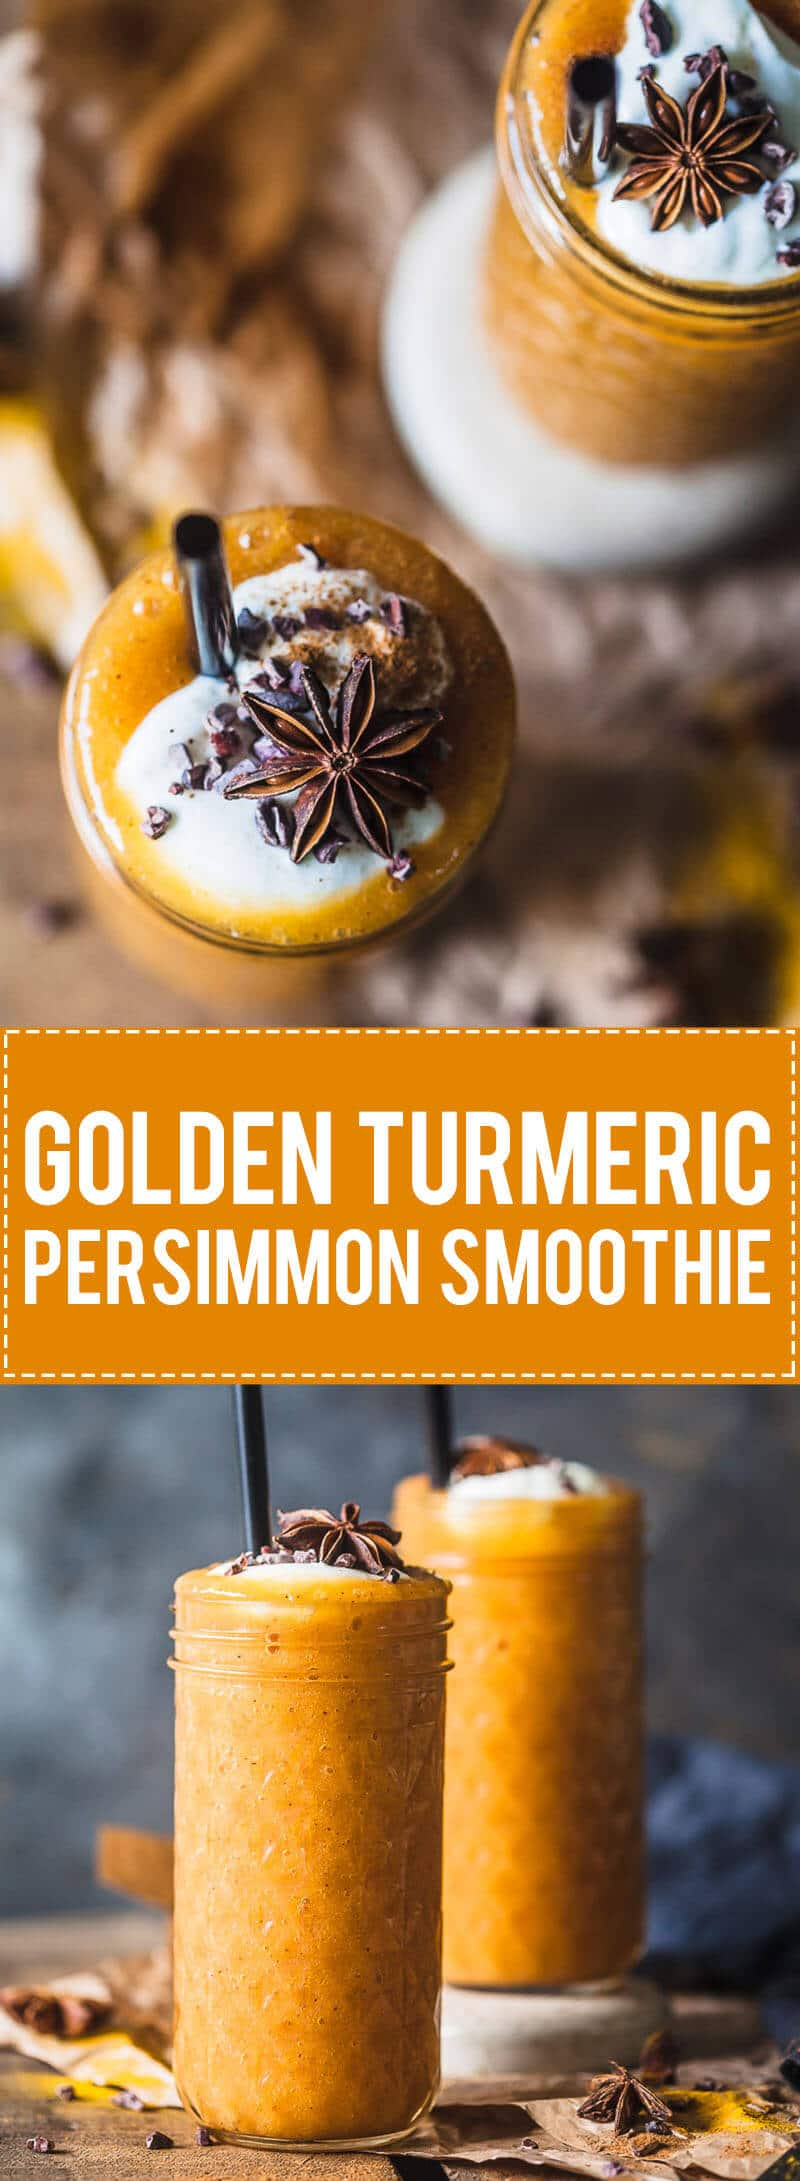 This beautiful golden Turmeric Persimmon Smoothie is your ultimate Fall smoothie! Vegan, Easy & Delicious!